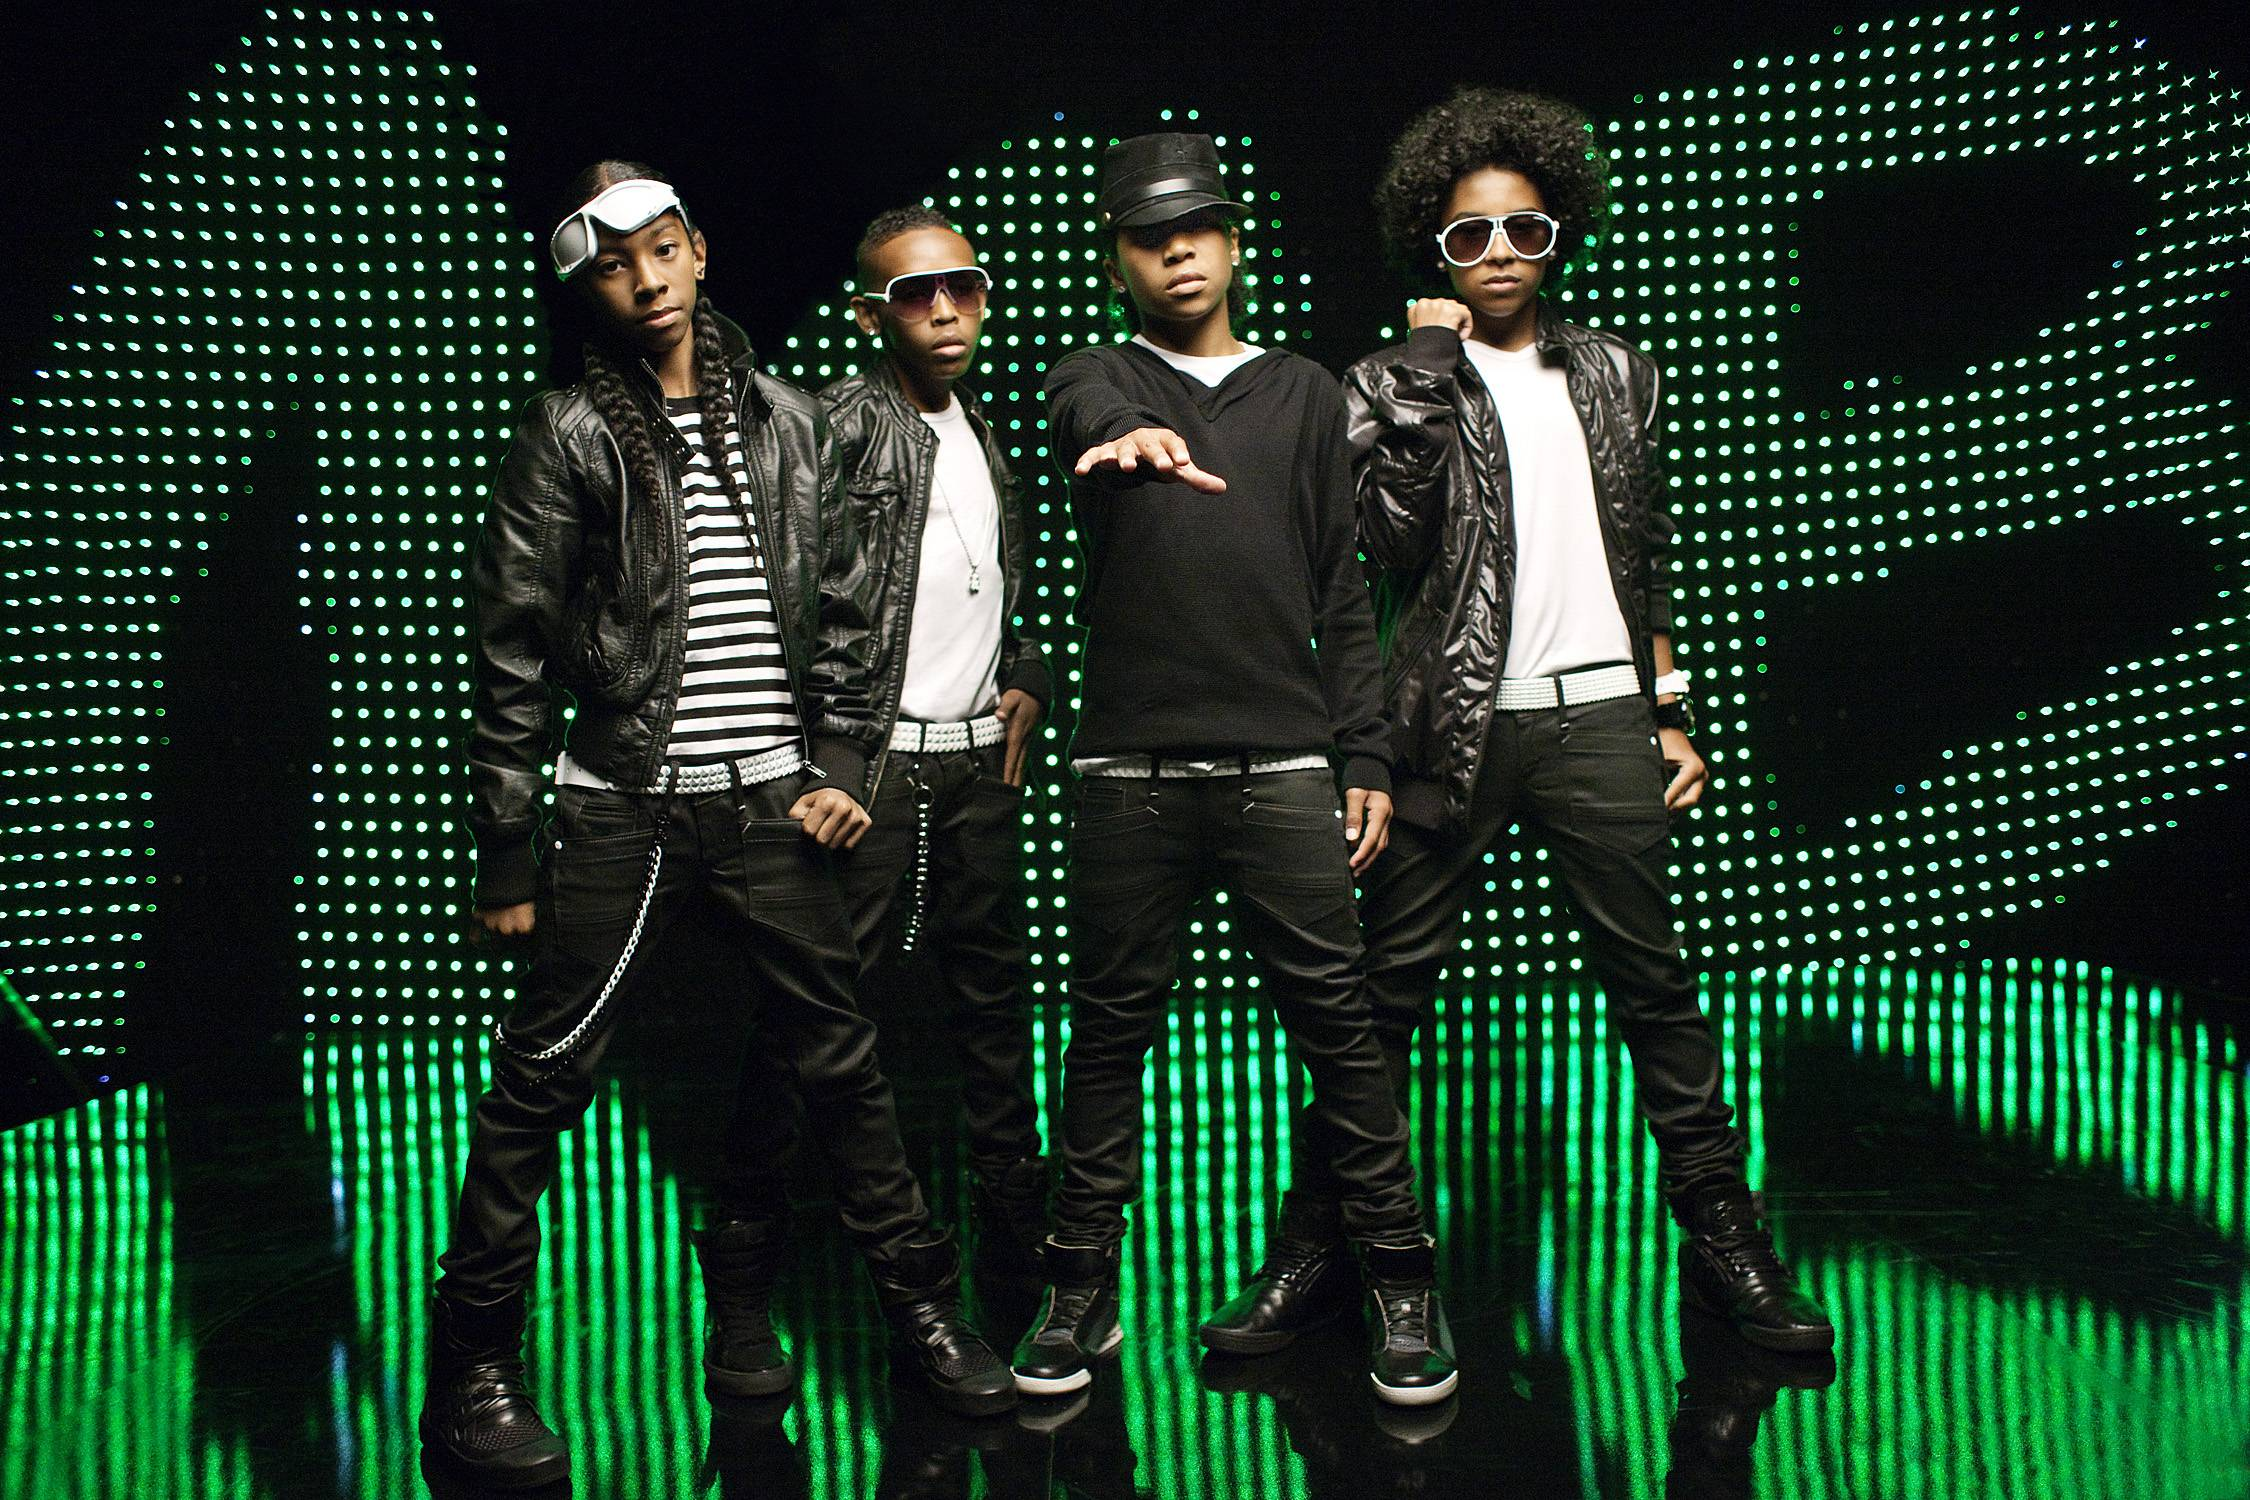 9. They?re Renaissance Men - Prodigy is an incredible dancer, Ray Ray studied under battle dancer Tommy the Clown, Roc Royal has been rapping since he was 8, and Princeton started acting in commercials at age 4!(Photo: meenophoto)